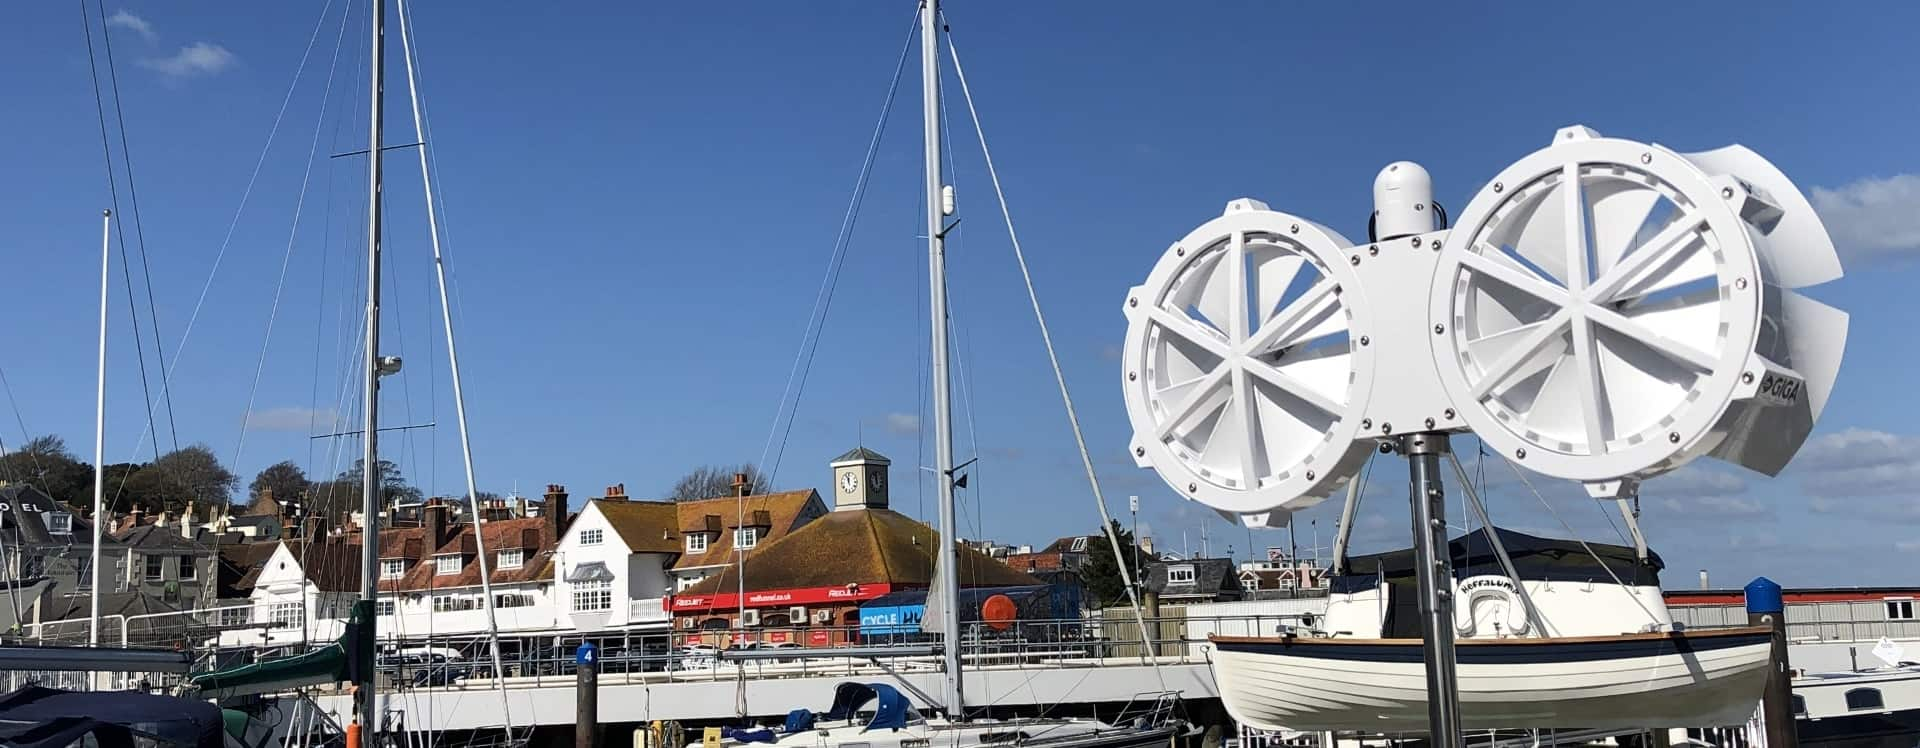 Wind turbine for marine use